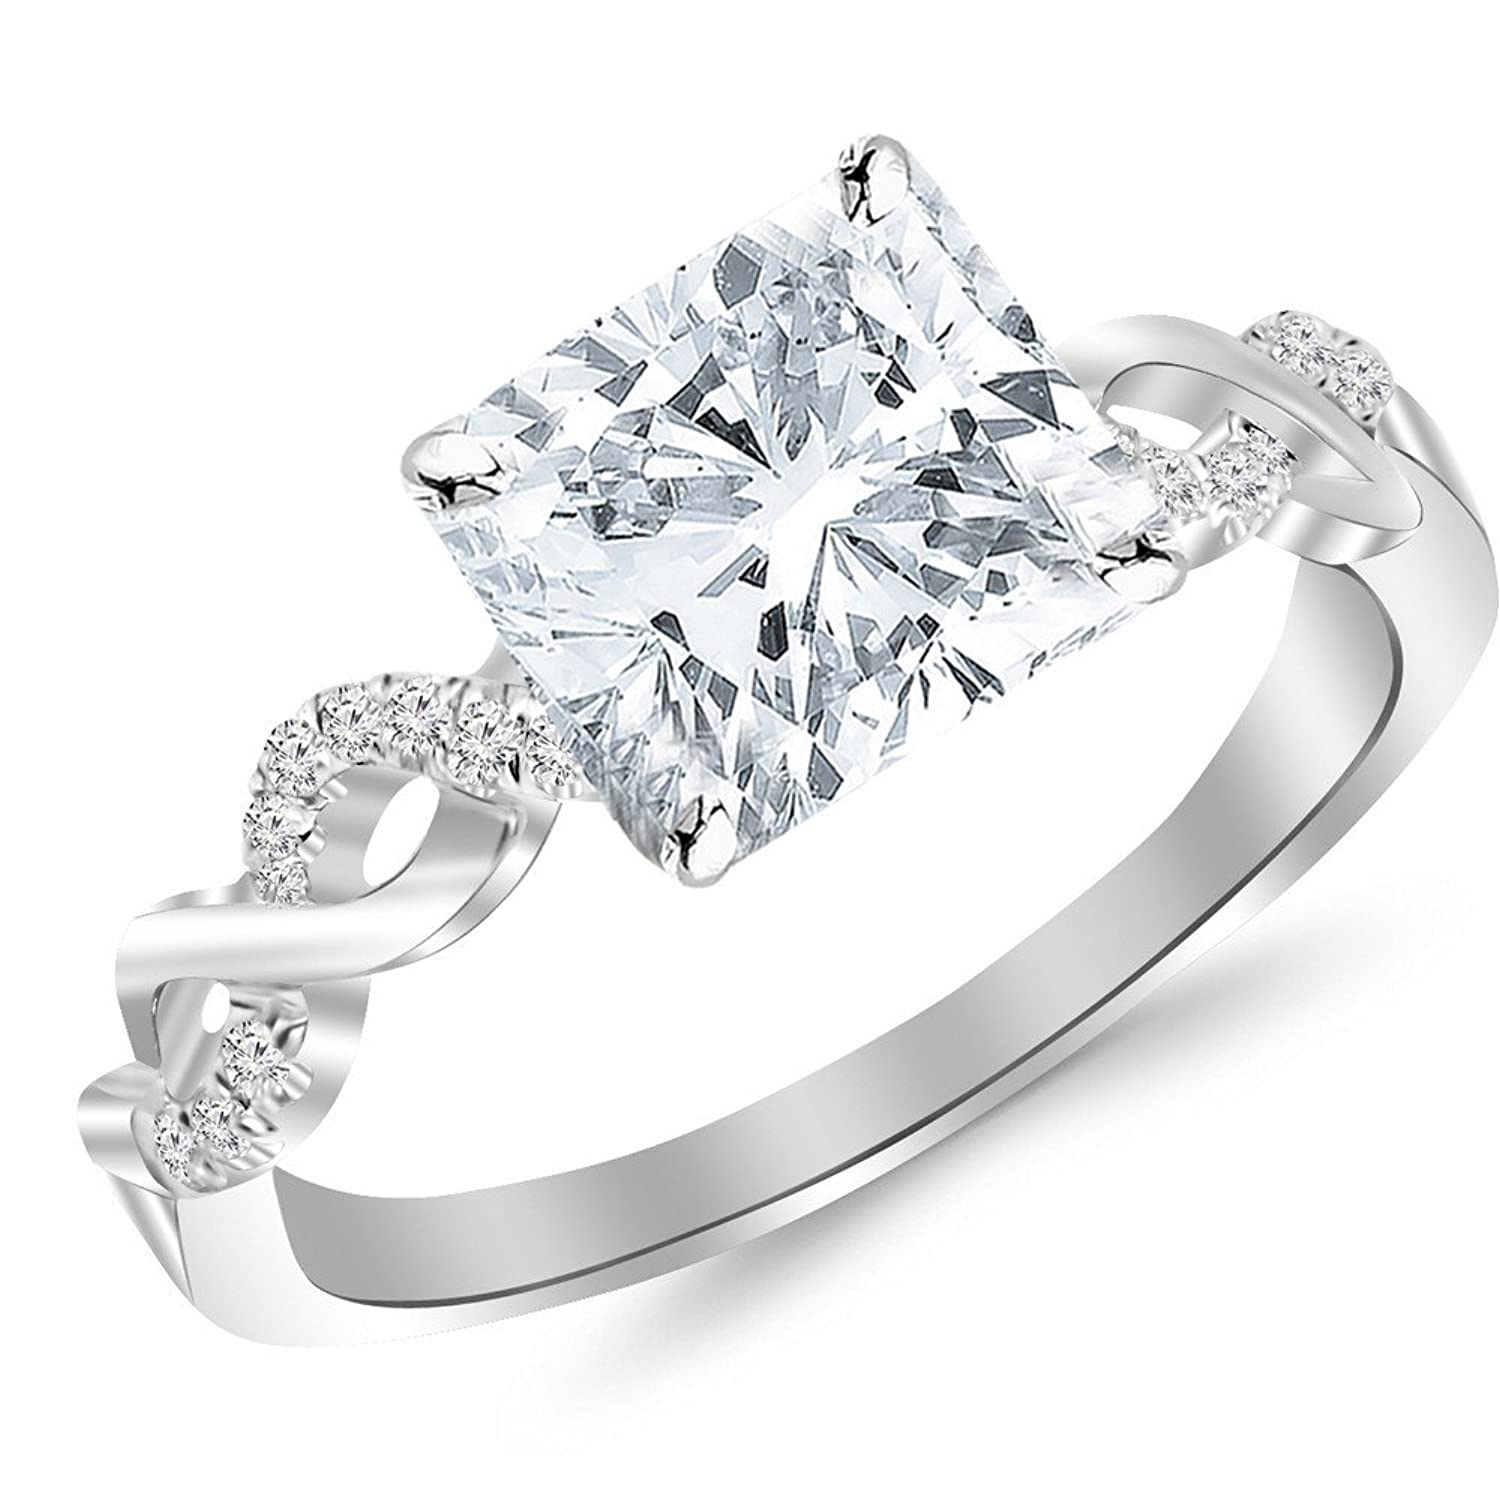 0.85 Cttw 14K White Gold Cushion Cut Twisting Infinity Gold and Diamond Split Shank Pave Set Diamond Engagement Ring with a 0.72 Carat I-J Color VS1-VS2 Clarity Center